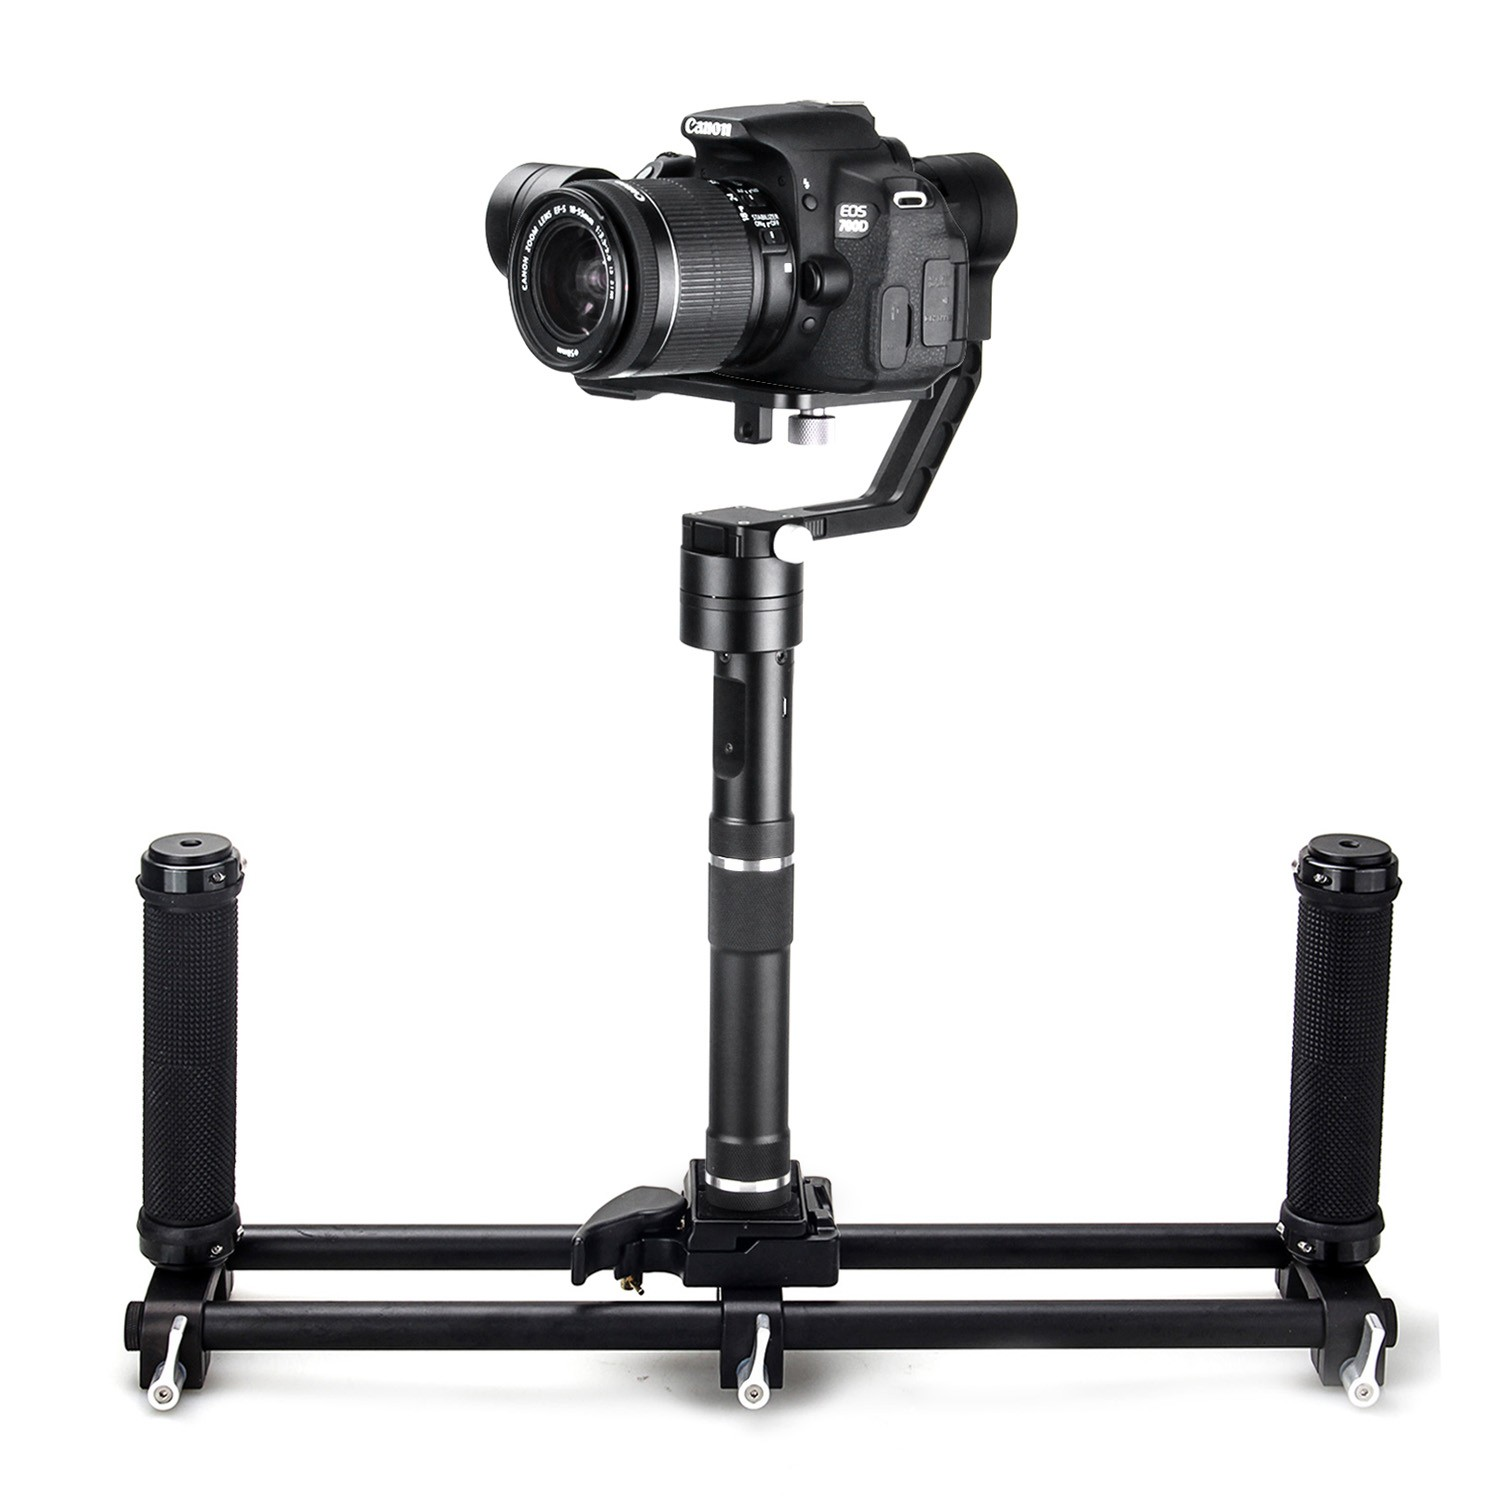 Zhiyun Crane 3-Axis Stabilizer Gimbal for Mirrorless Cameras +Dual Handheld grip neewer dual handheld grip for neewer zhiyun crane m 3 axis handheld stabilizer 1 5 ft 46 5 cm non slip durable camera gimbal